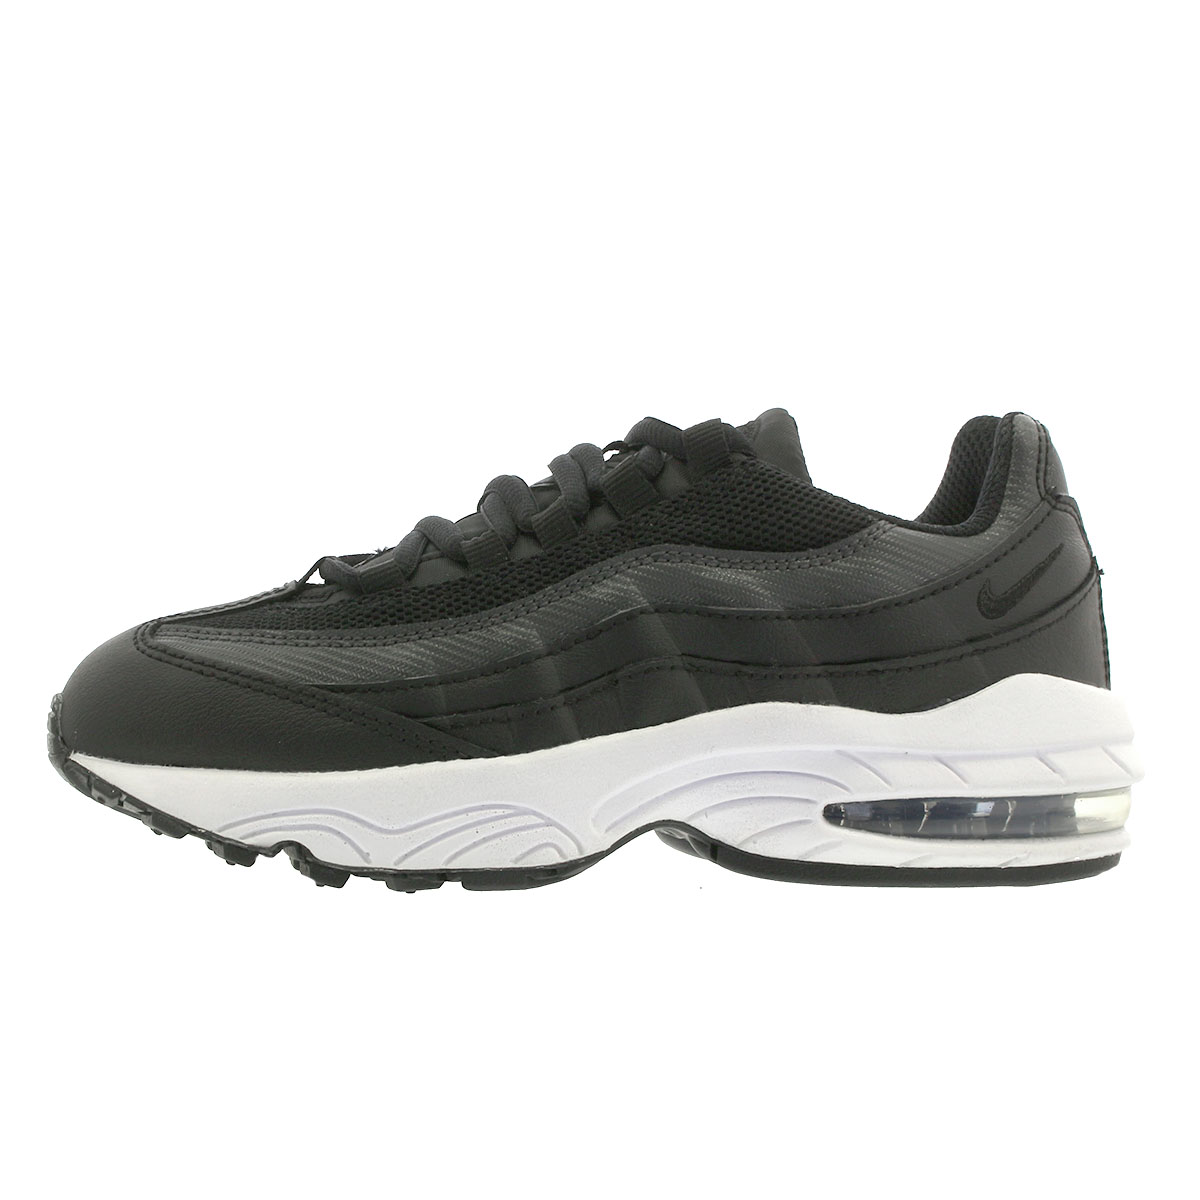 890ac98165 ... NIKE AIR MAX 95 EP PS Kie Ney AMAX EP PS BLACK/BLACK/ANTHRACITE ...